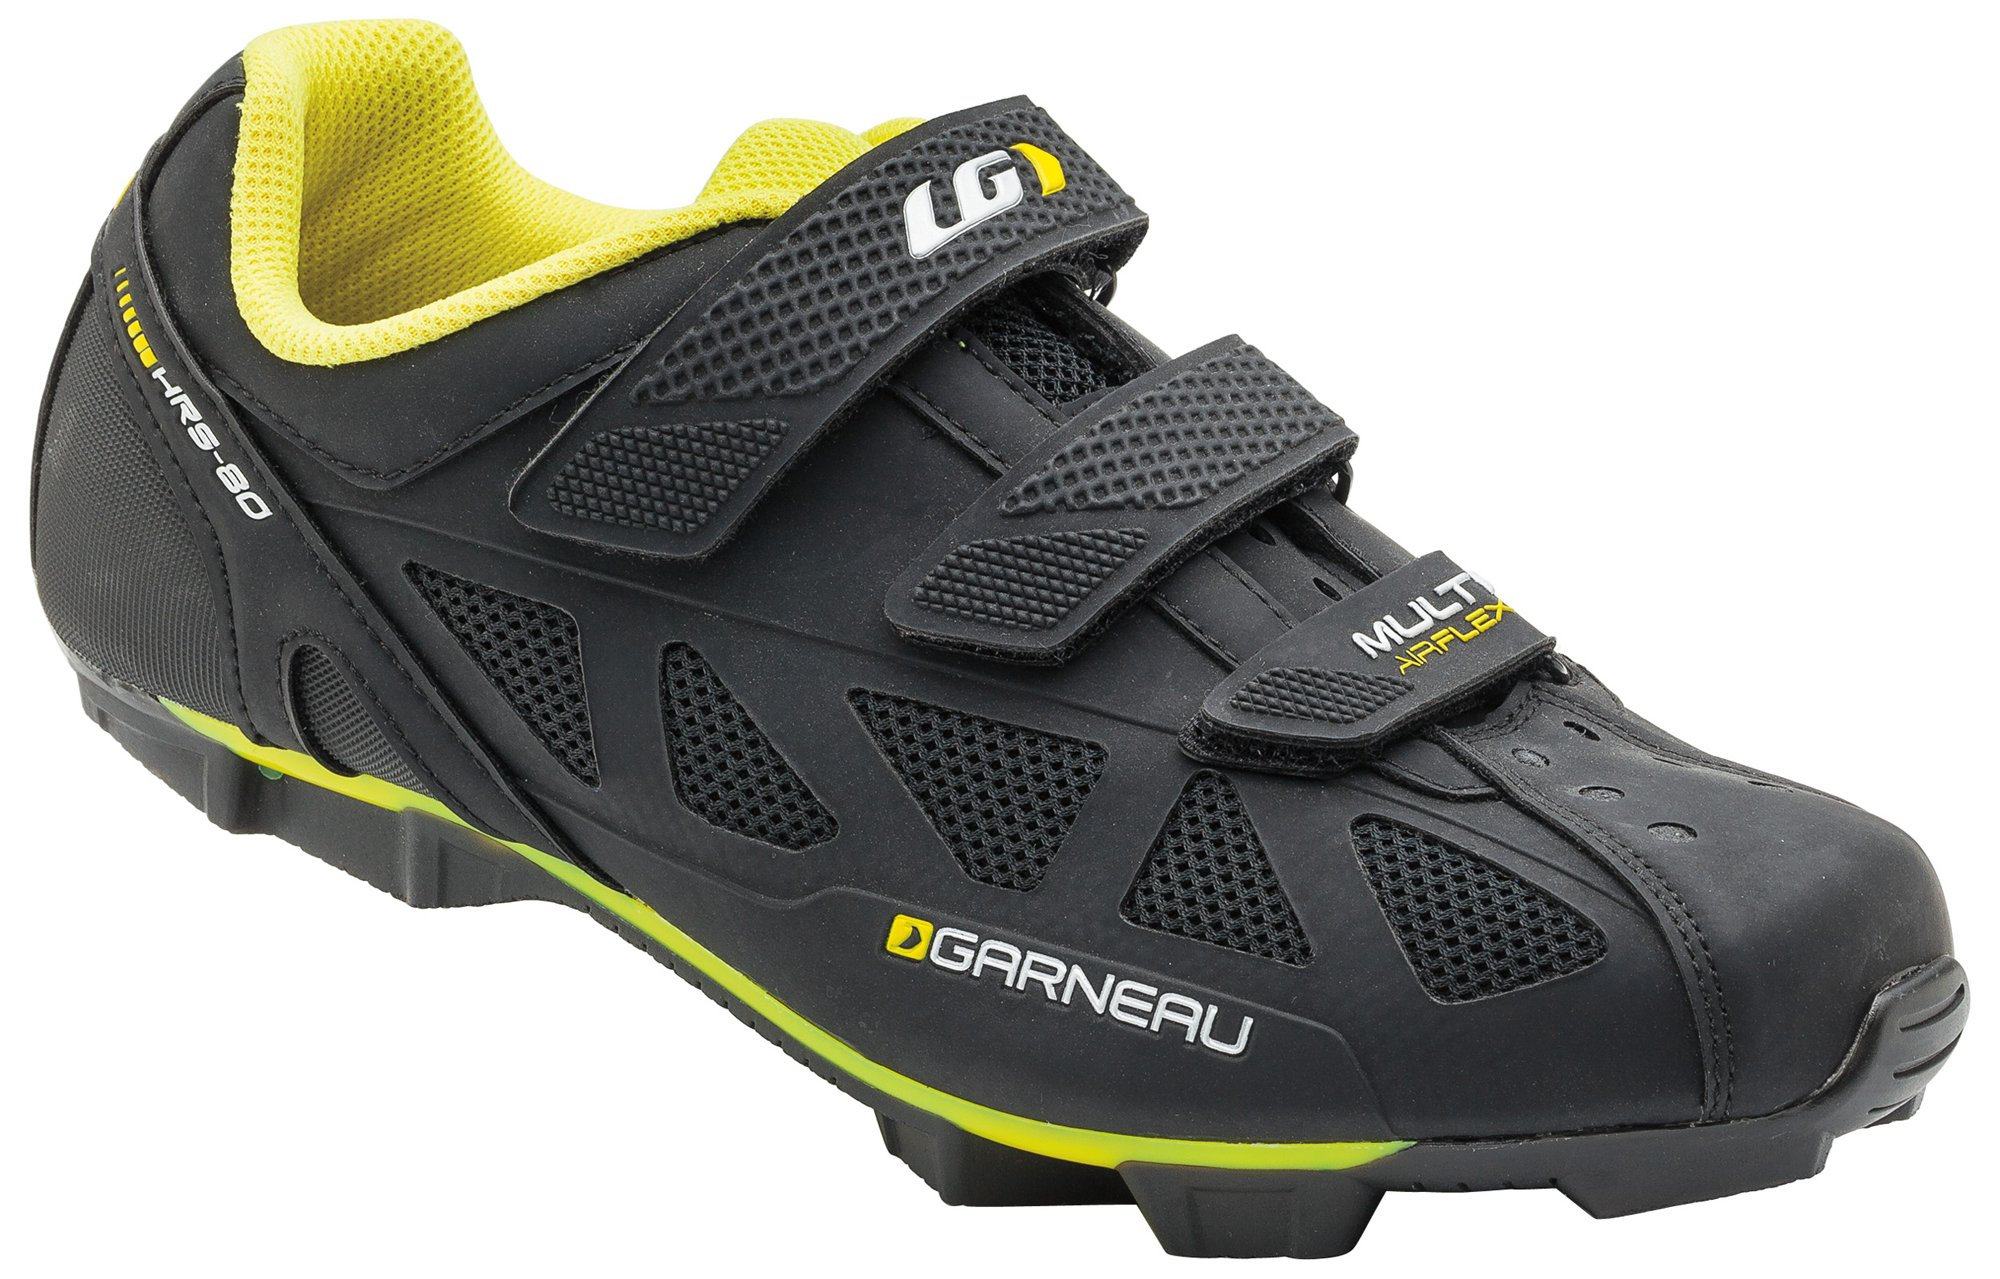 Louis Garneau Multi Air Flex Bike Shoes, Bright Yellow, US (7), EU (40)